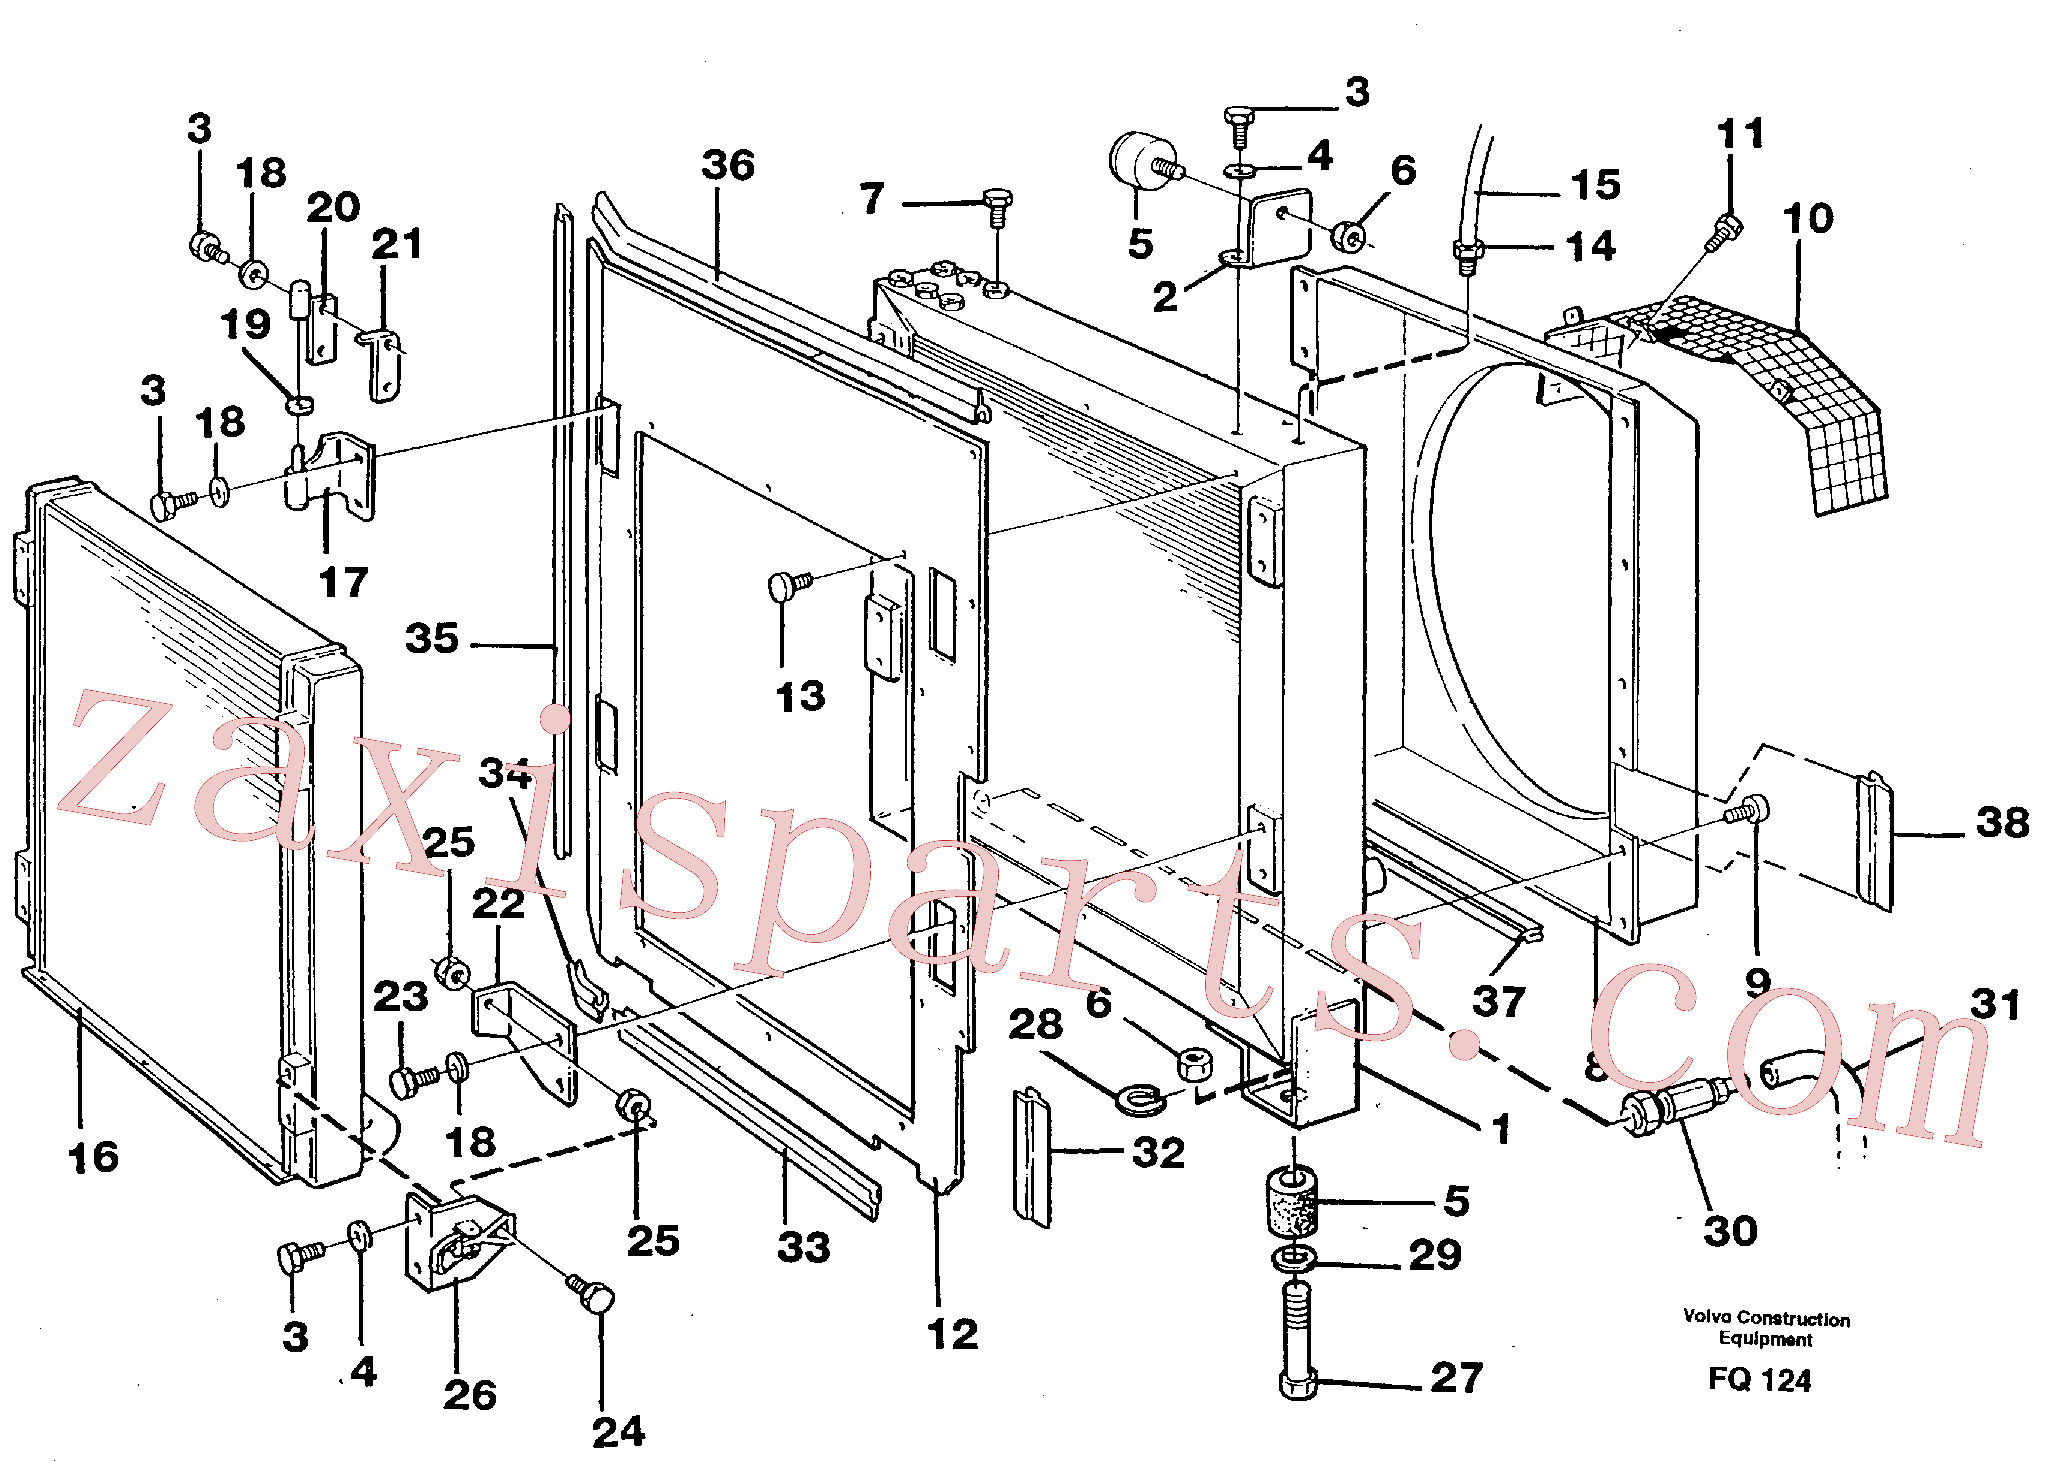 VOE14259202 for Volvo Hydraulic oil cooler, Radiator set(FQ124 assembly)